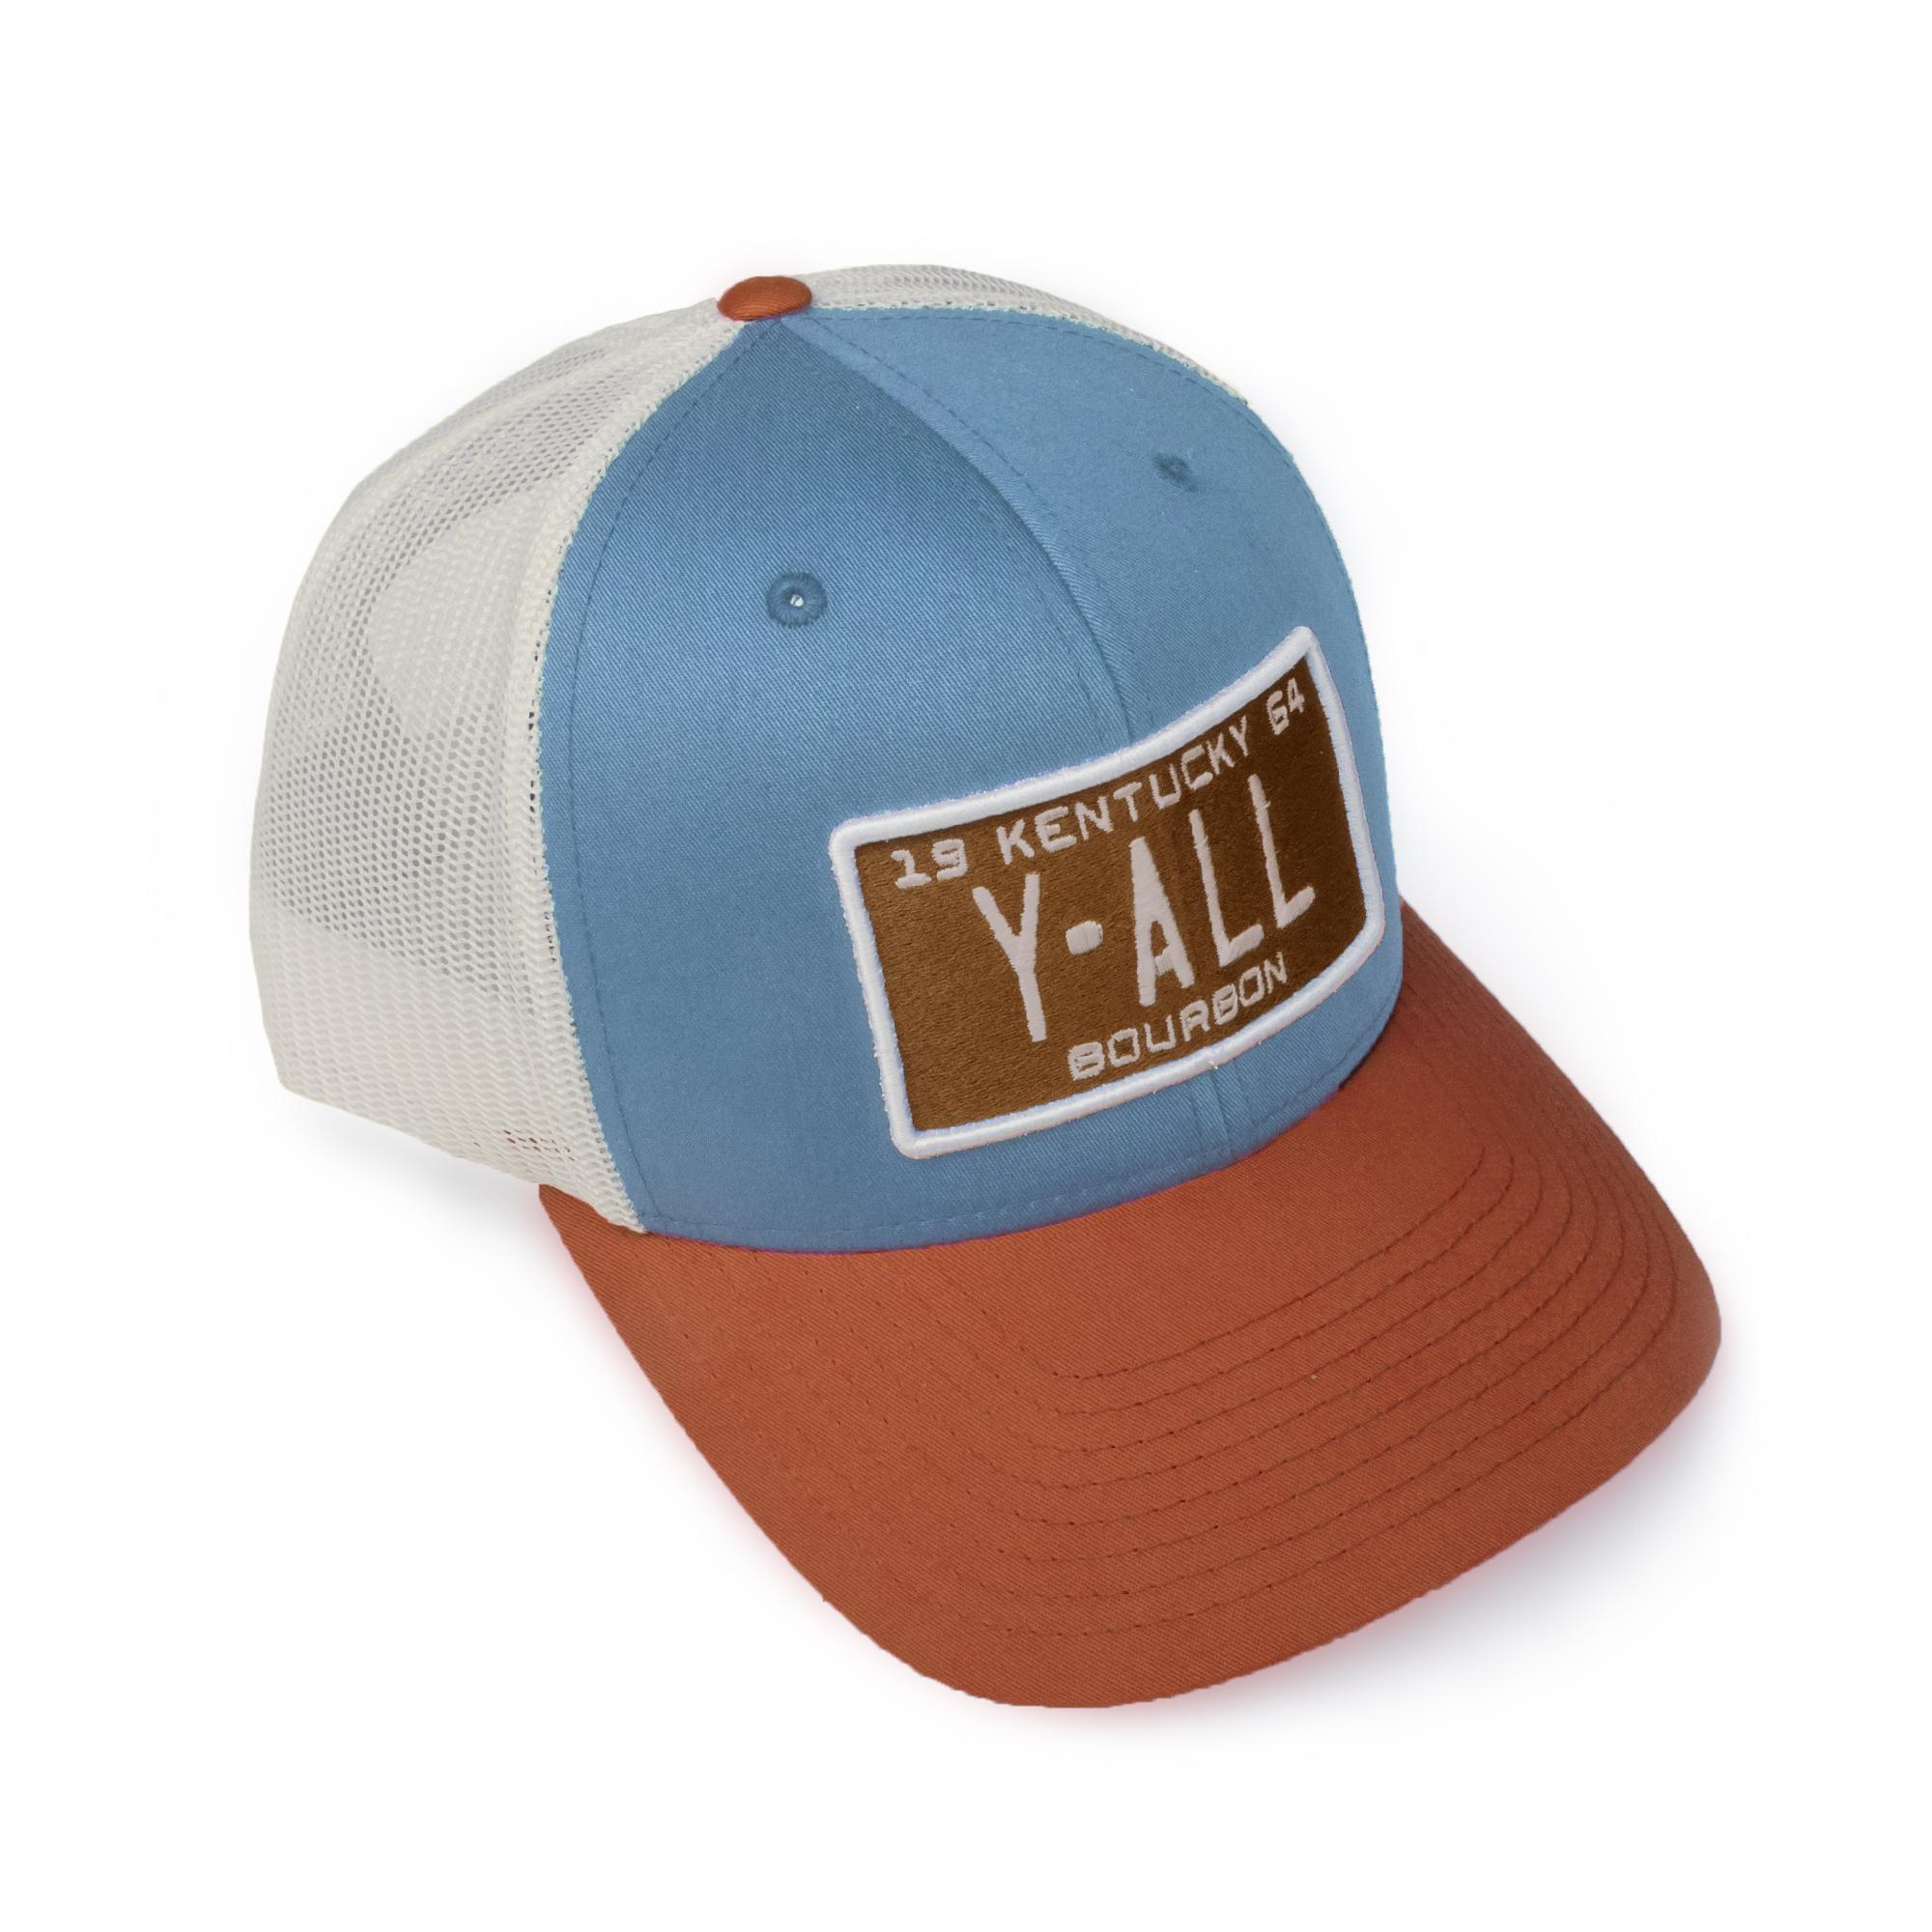 Y'ALL License Plate Gasoline Caps (Blue and Orange)-Hat-Southern Socks